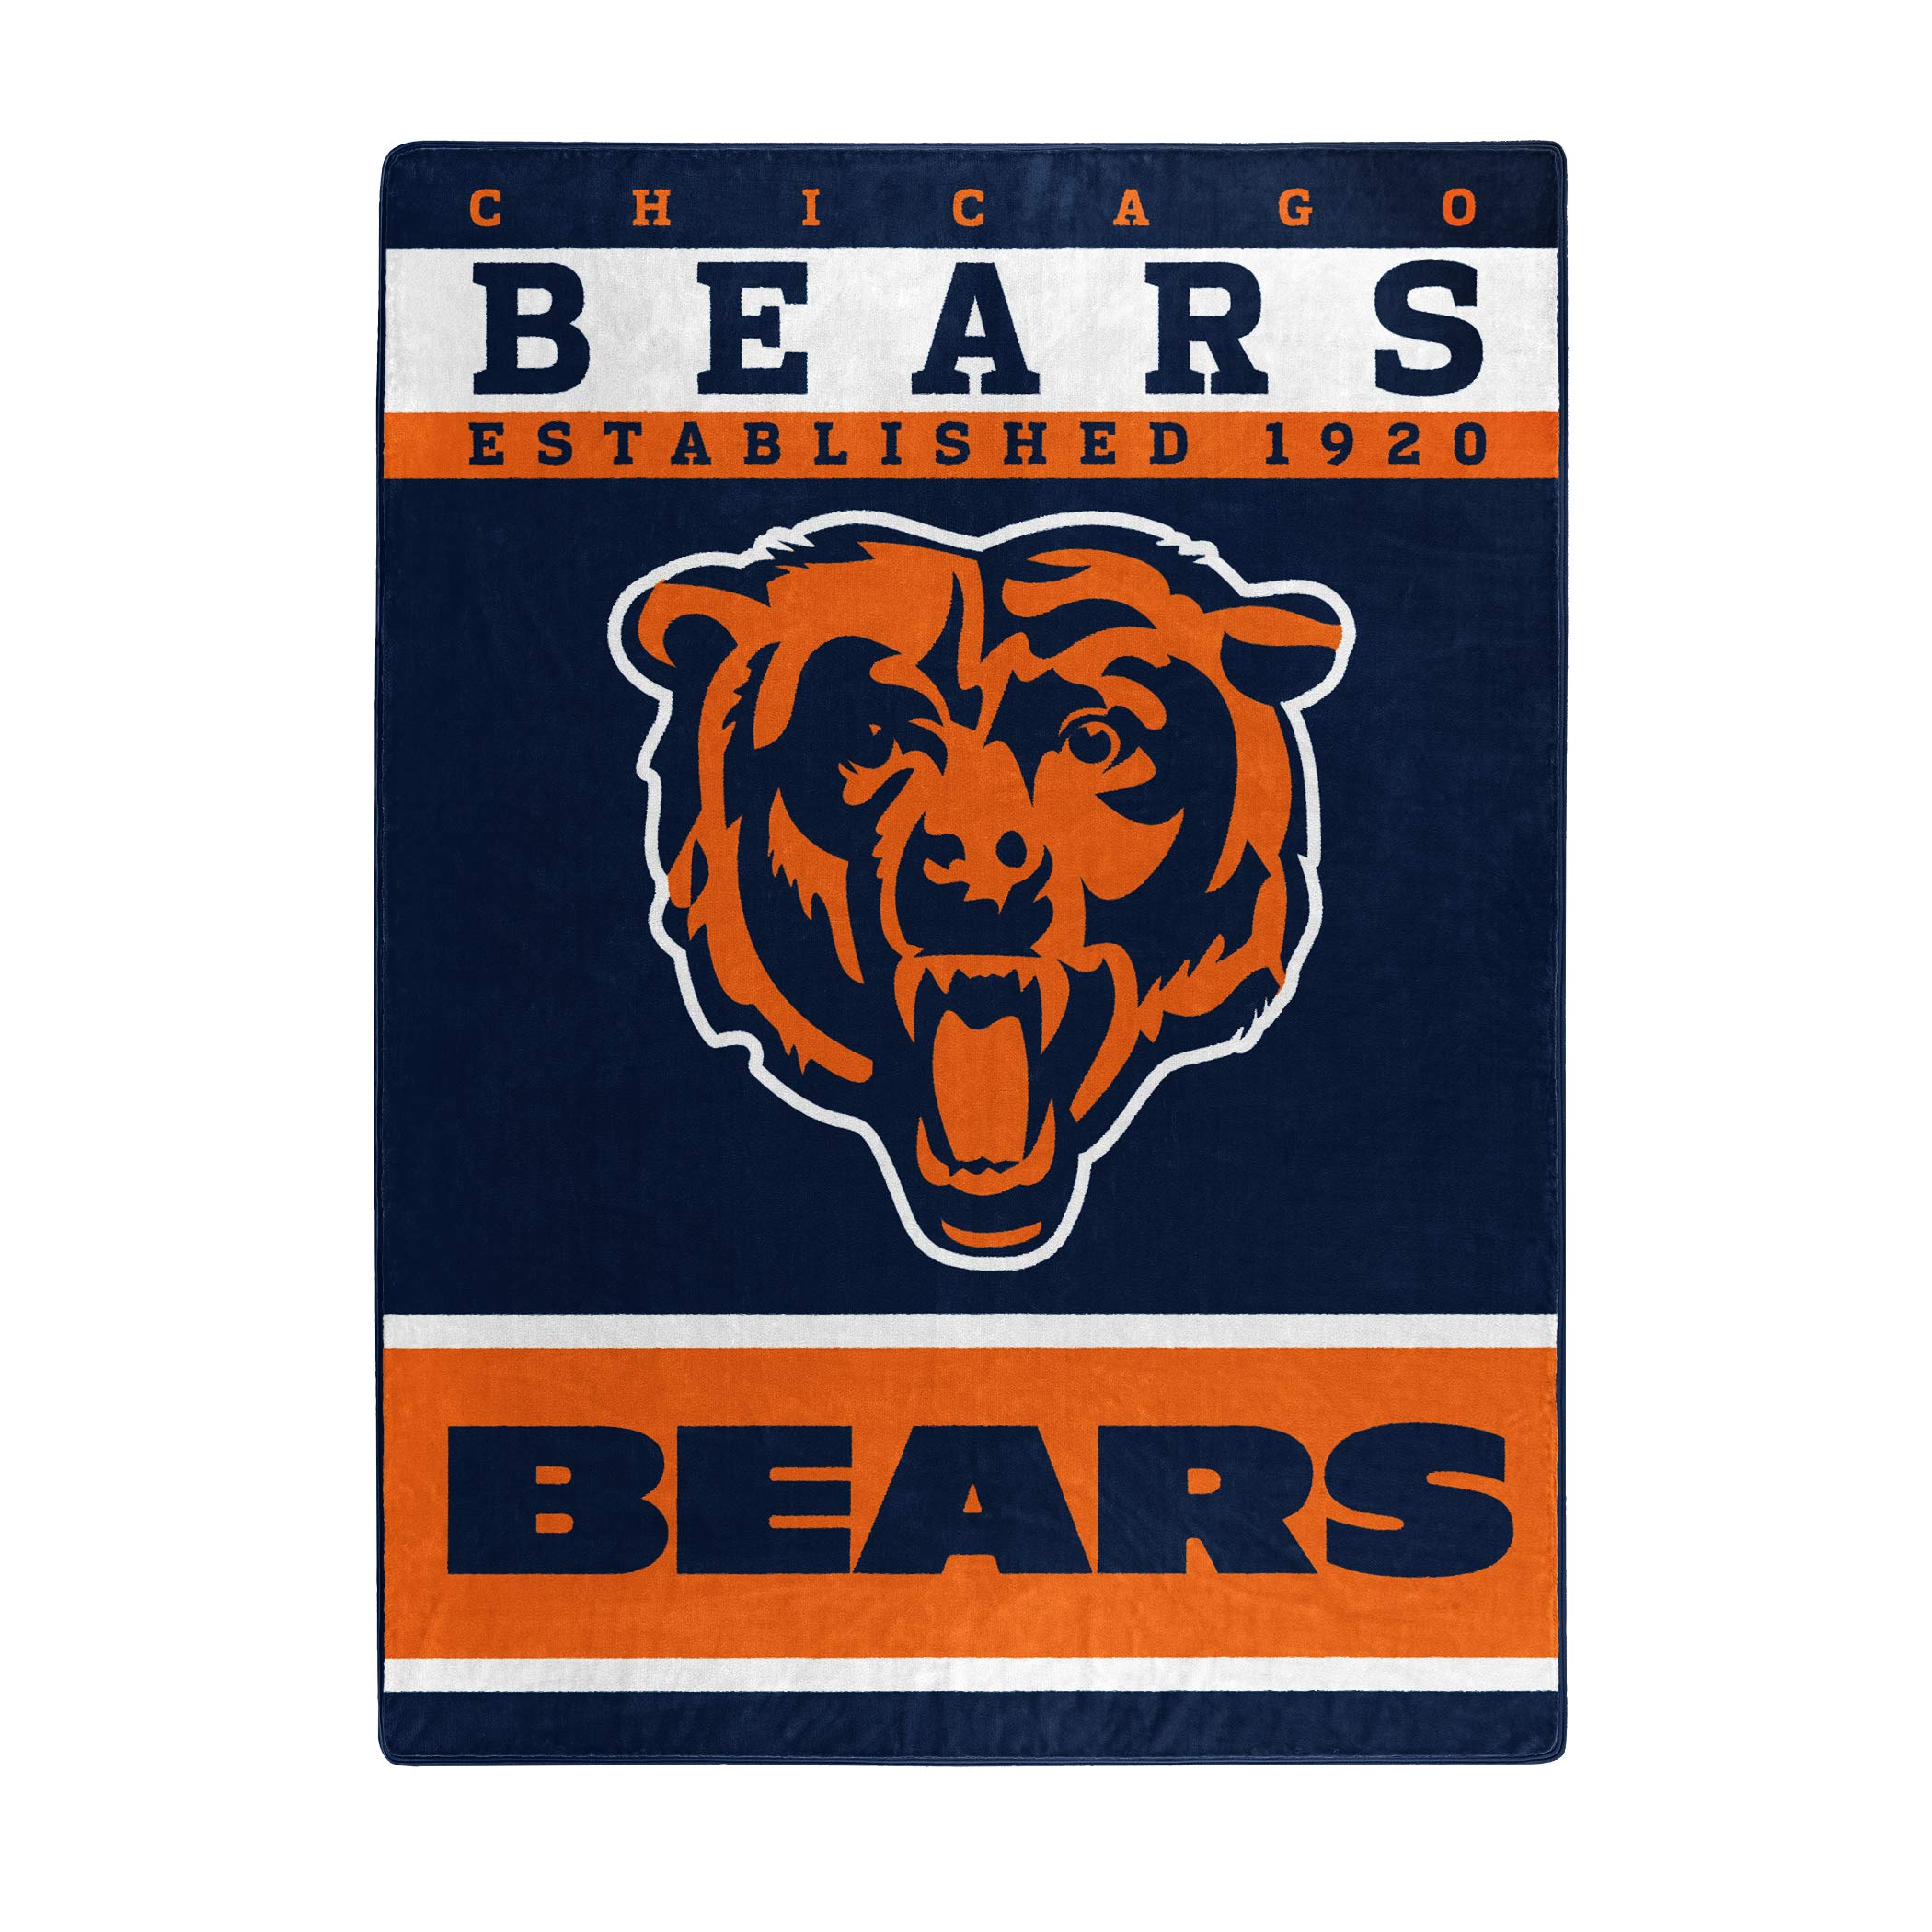 The Northwest Company Officially Licensed NFL Chicago Bears 12th Man Plush Raschel Throw Blanket, 60'' x 80'', Multi Color by The Northwest Company